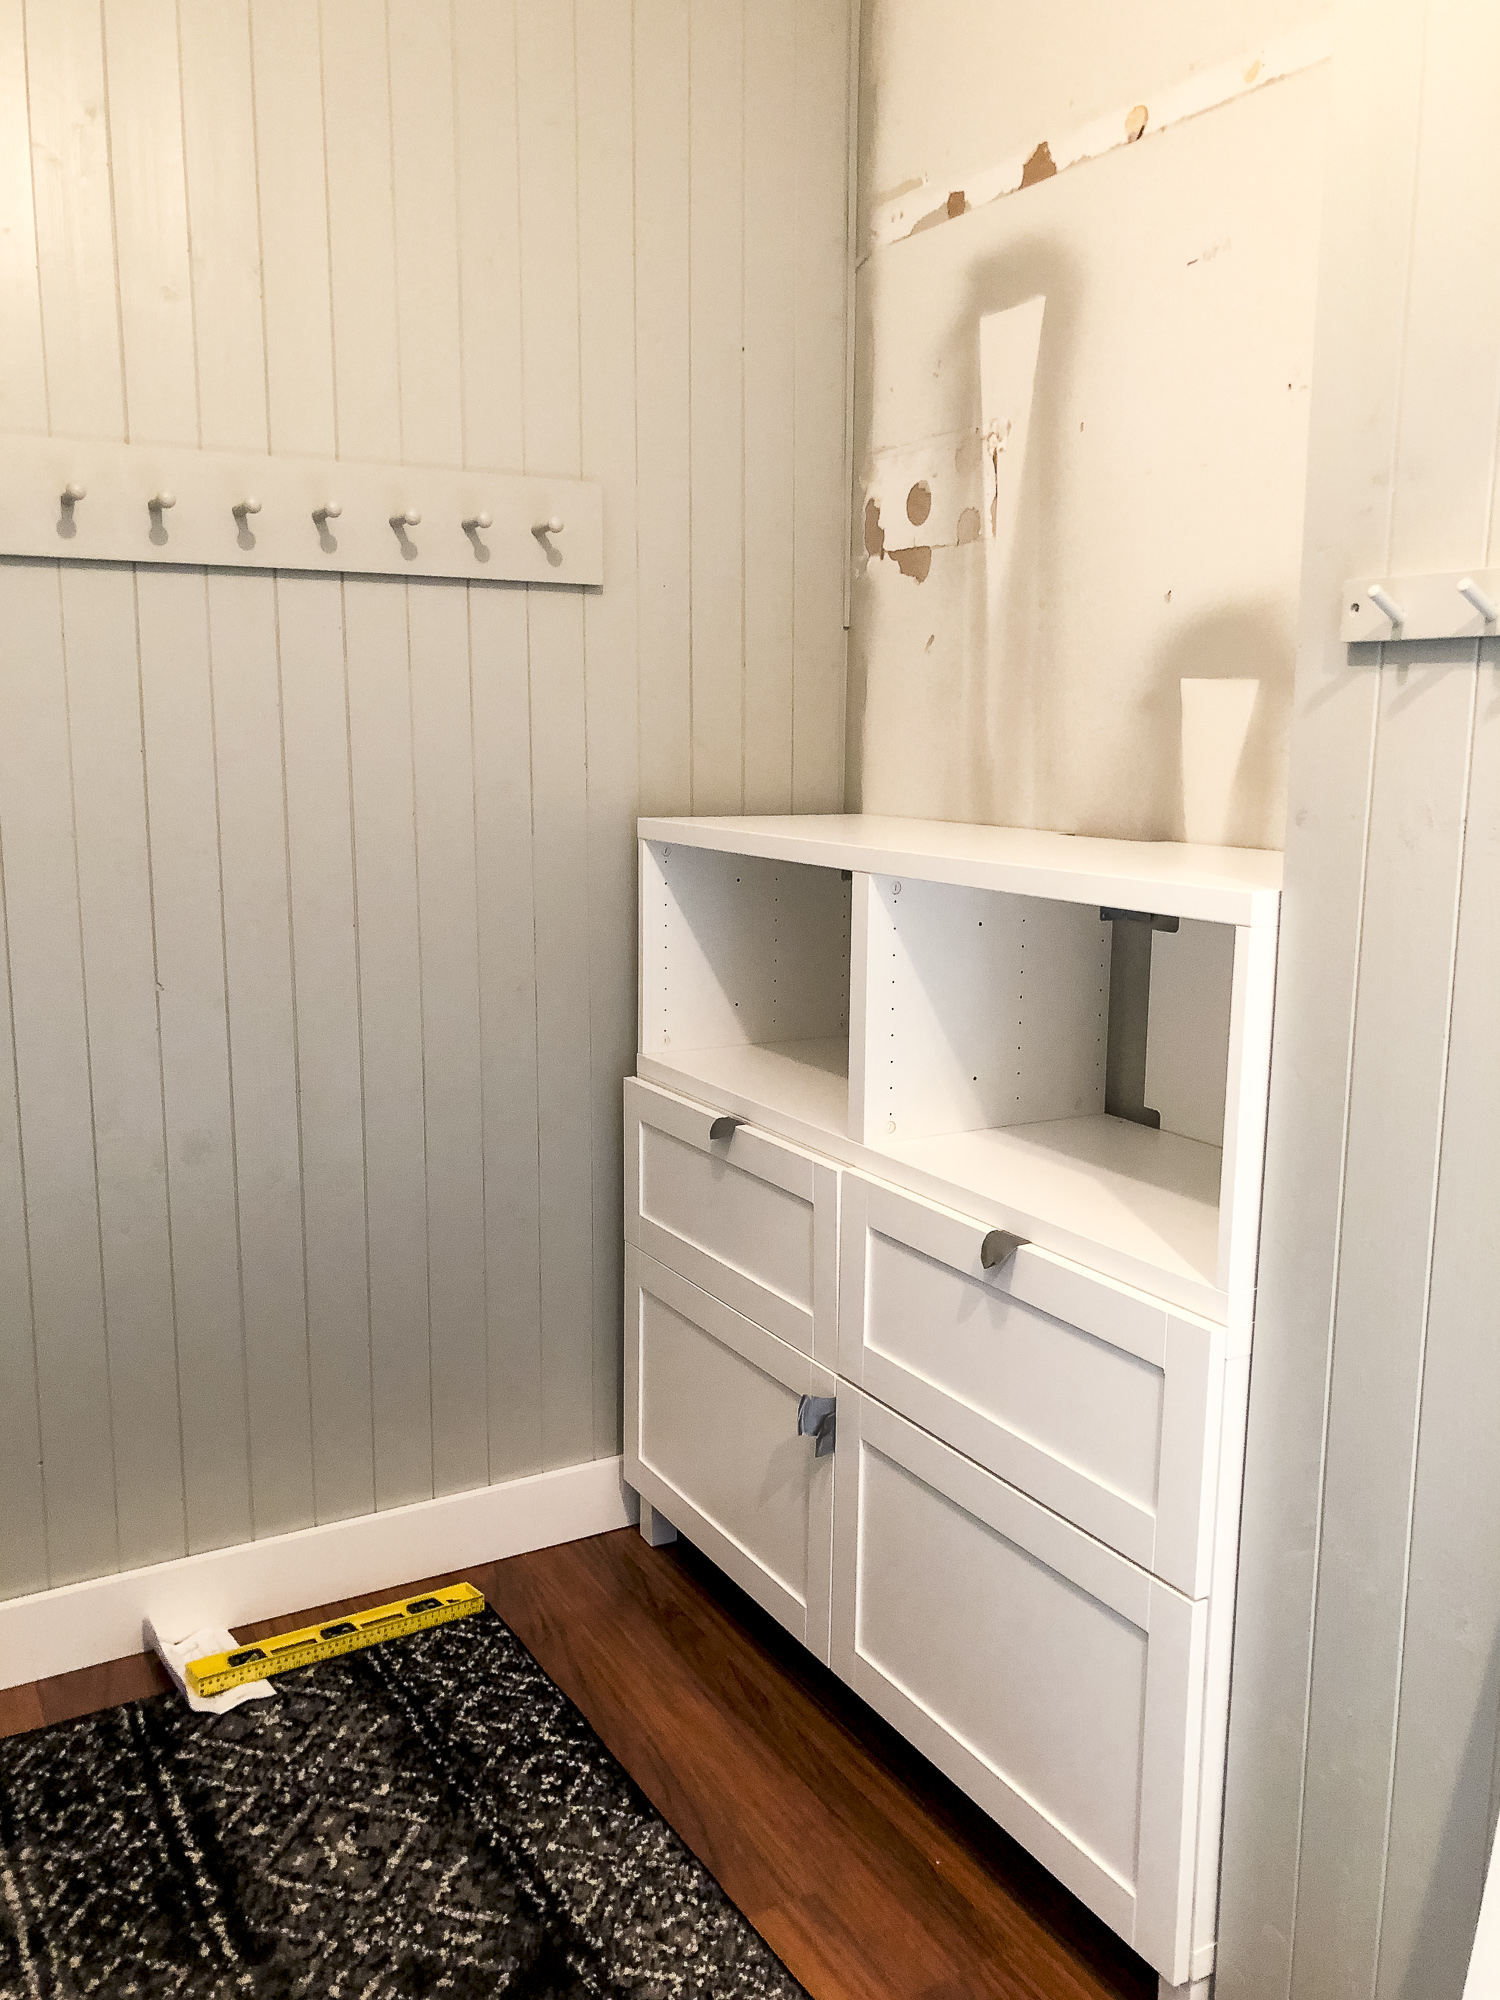 Mudroom storage ideas for a custom built in.